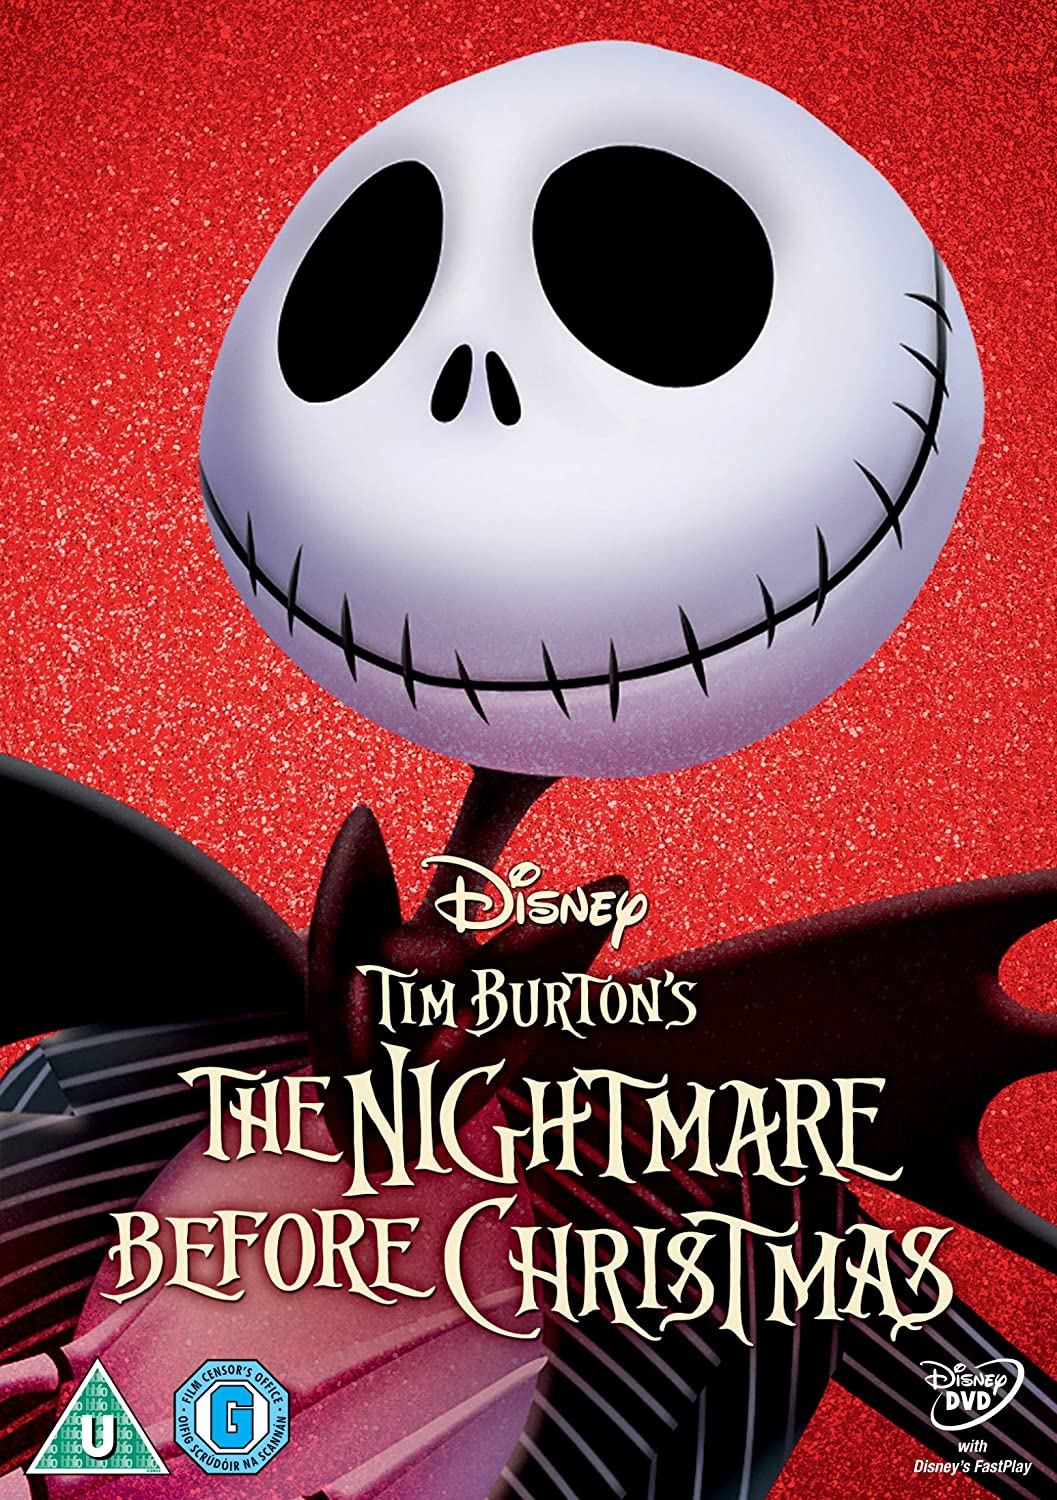 The Nightmare Before Christmas [1994] [DVD]: Amazon.co.uk: Danny ...